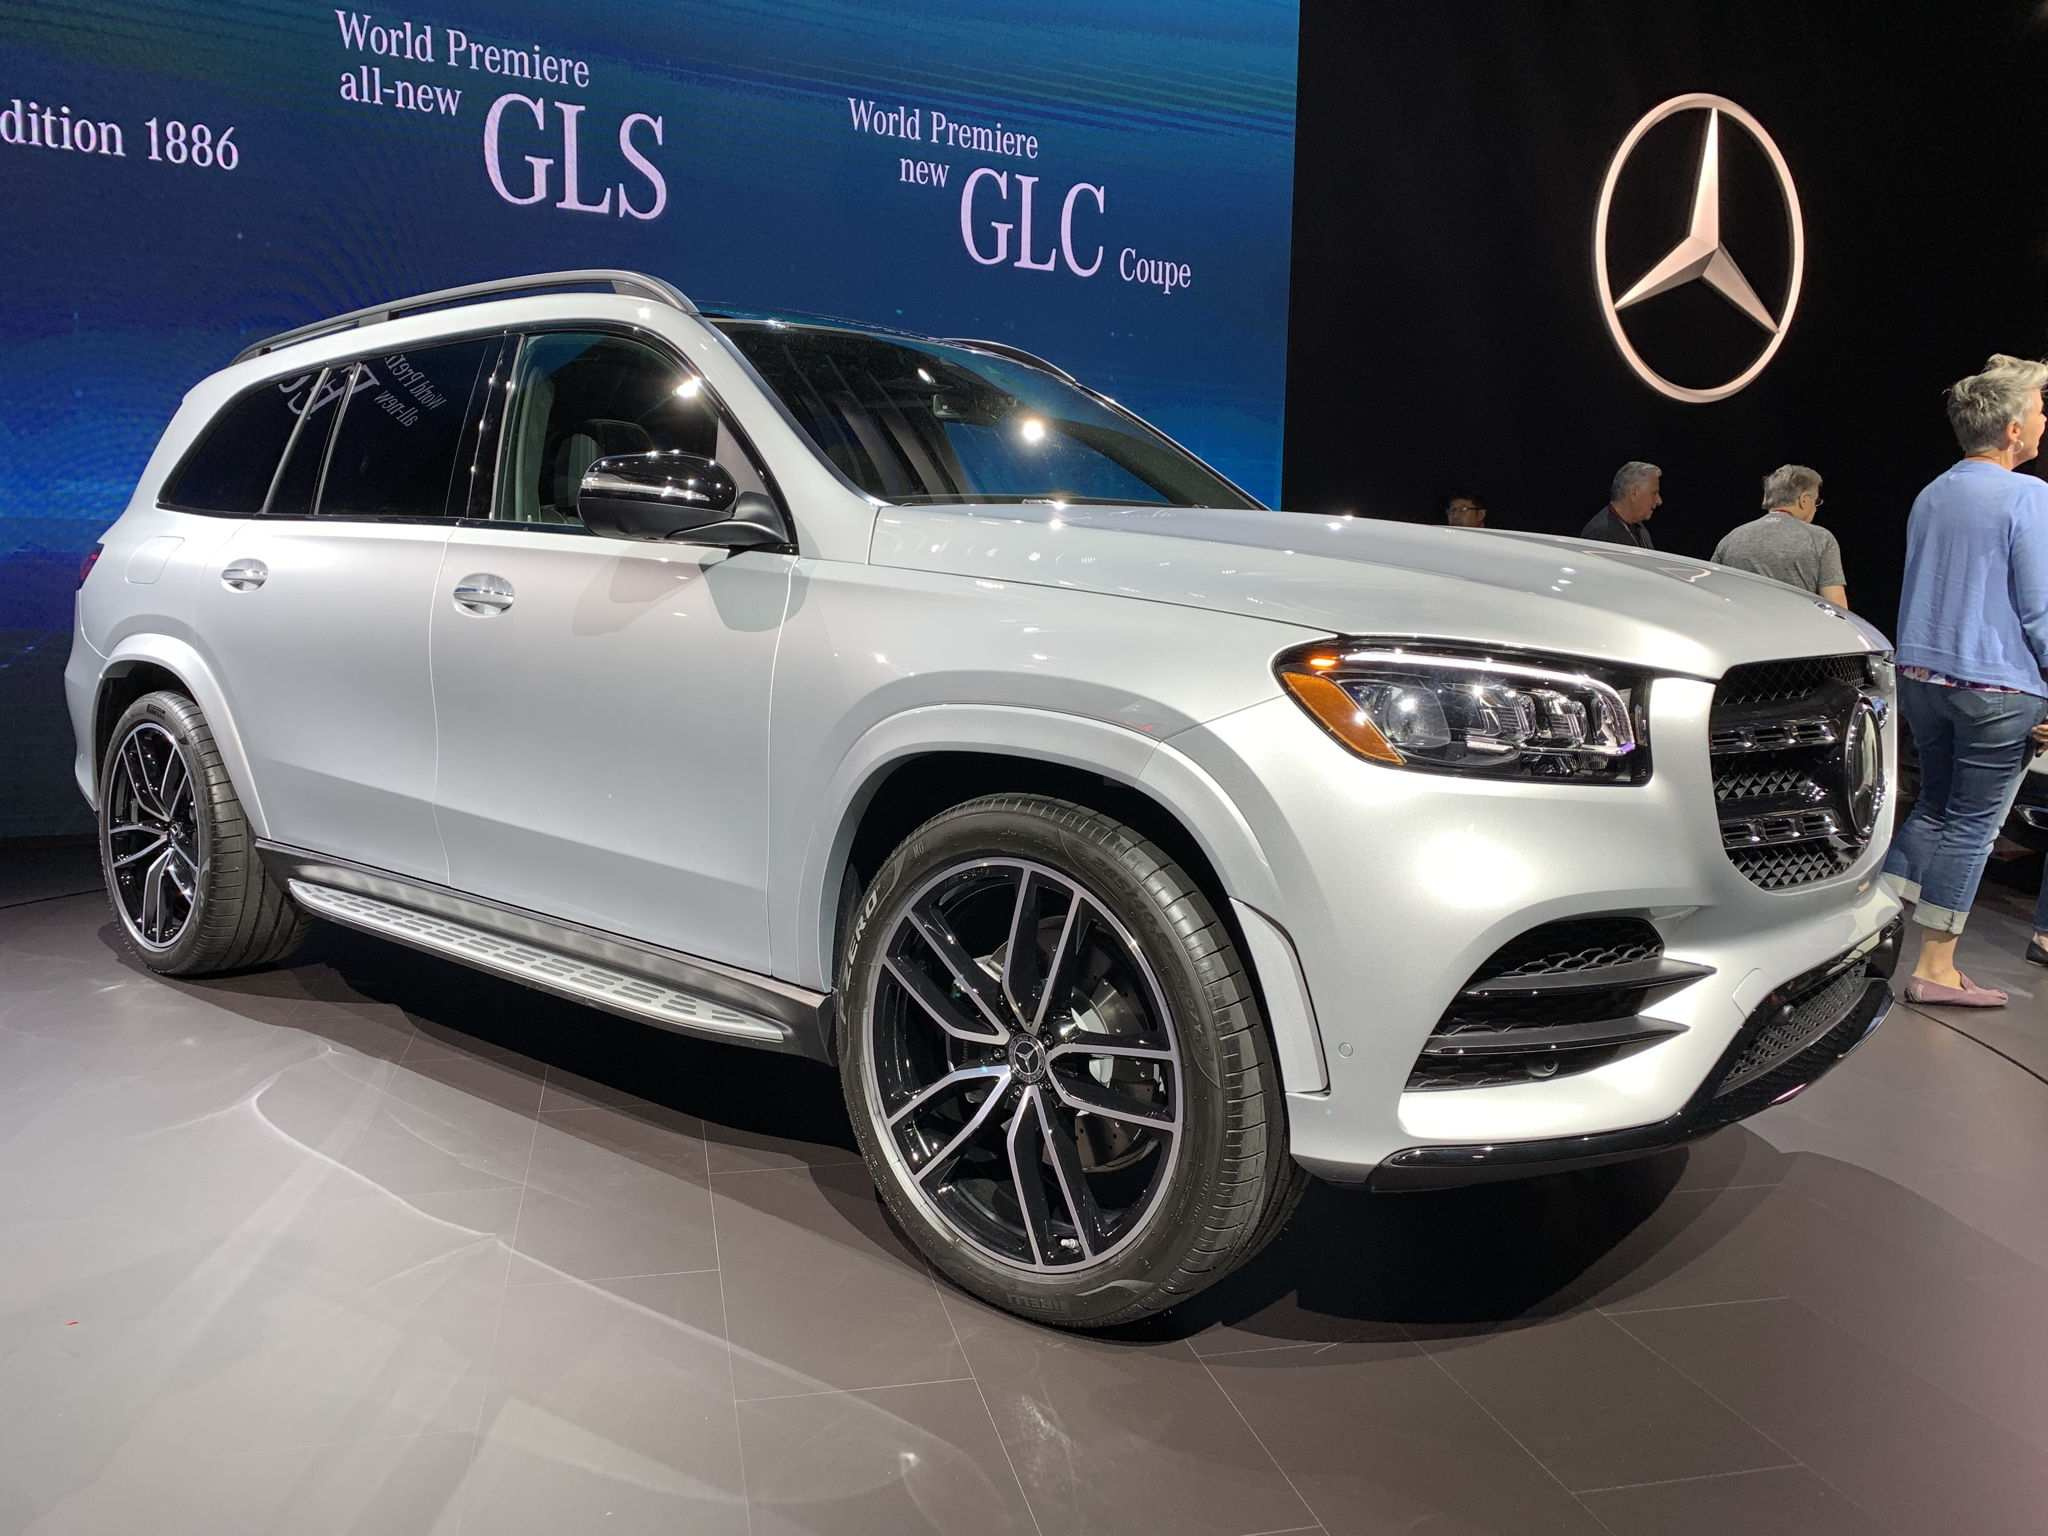 66 All New Mercedes 2019 Gls History